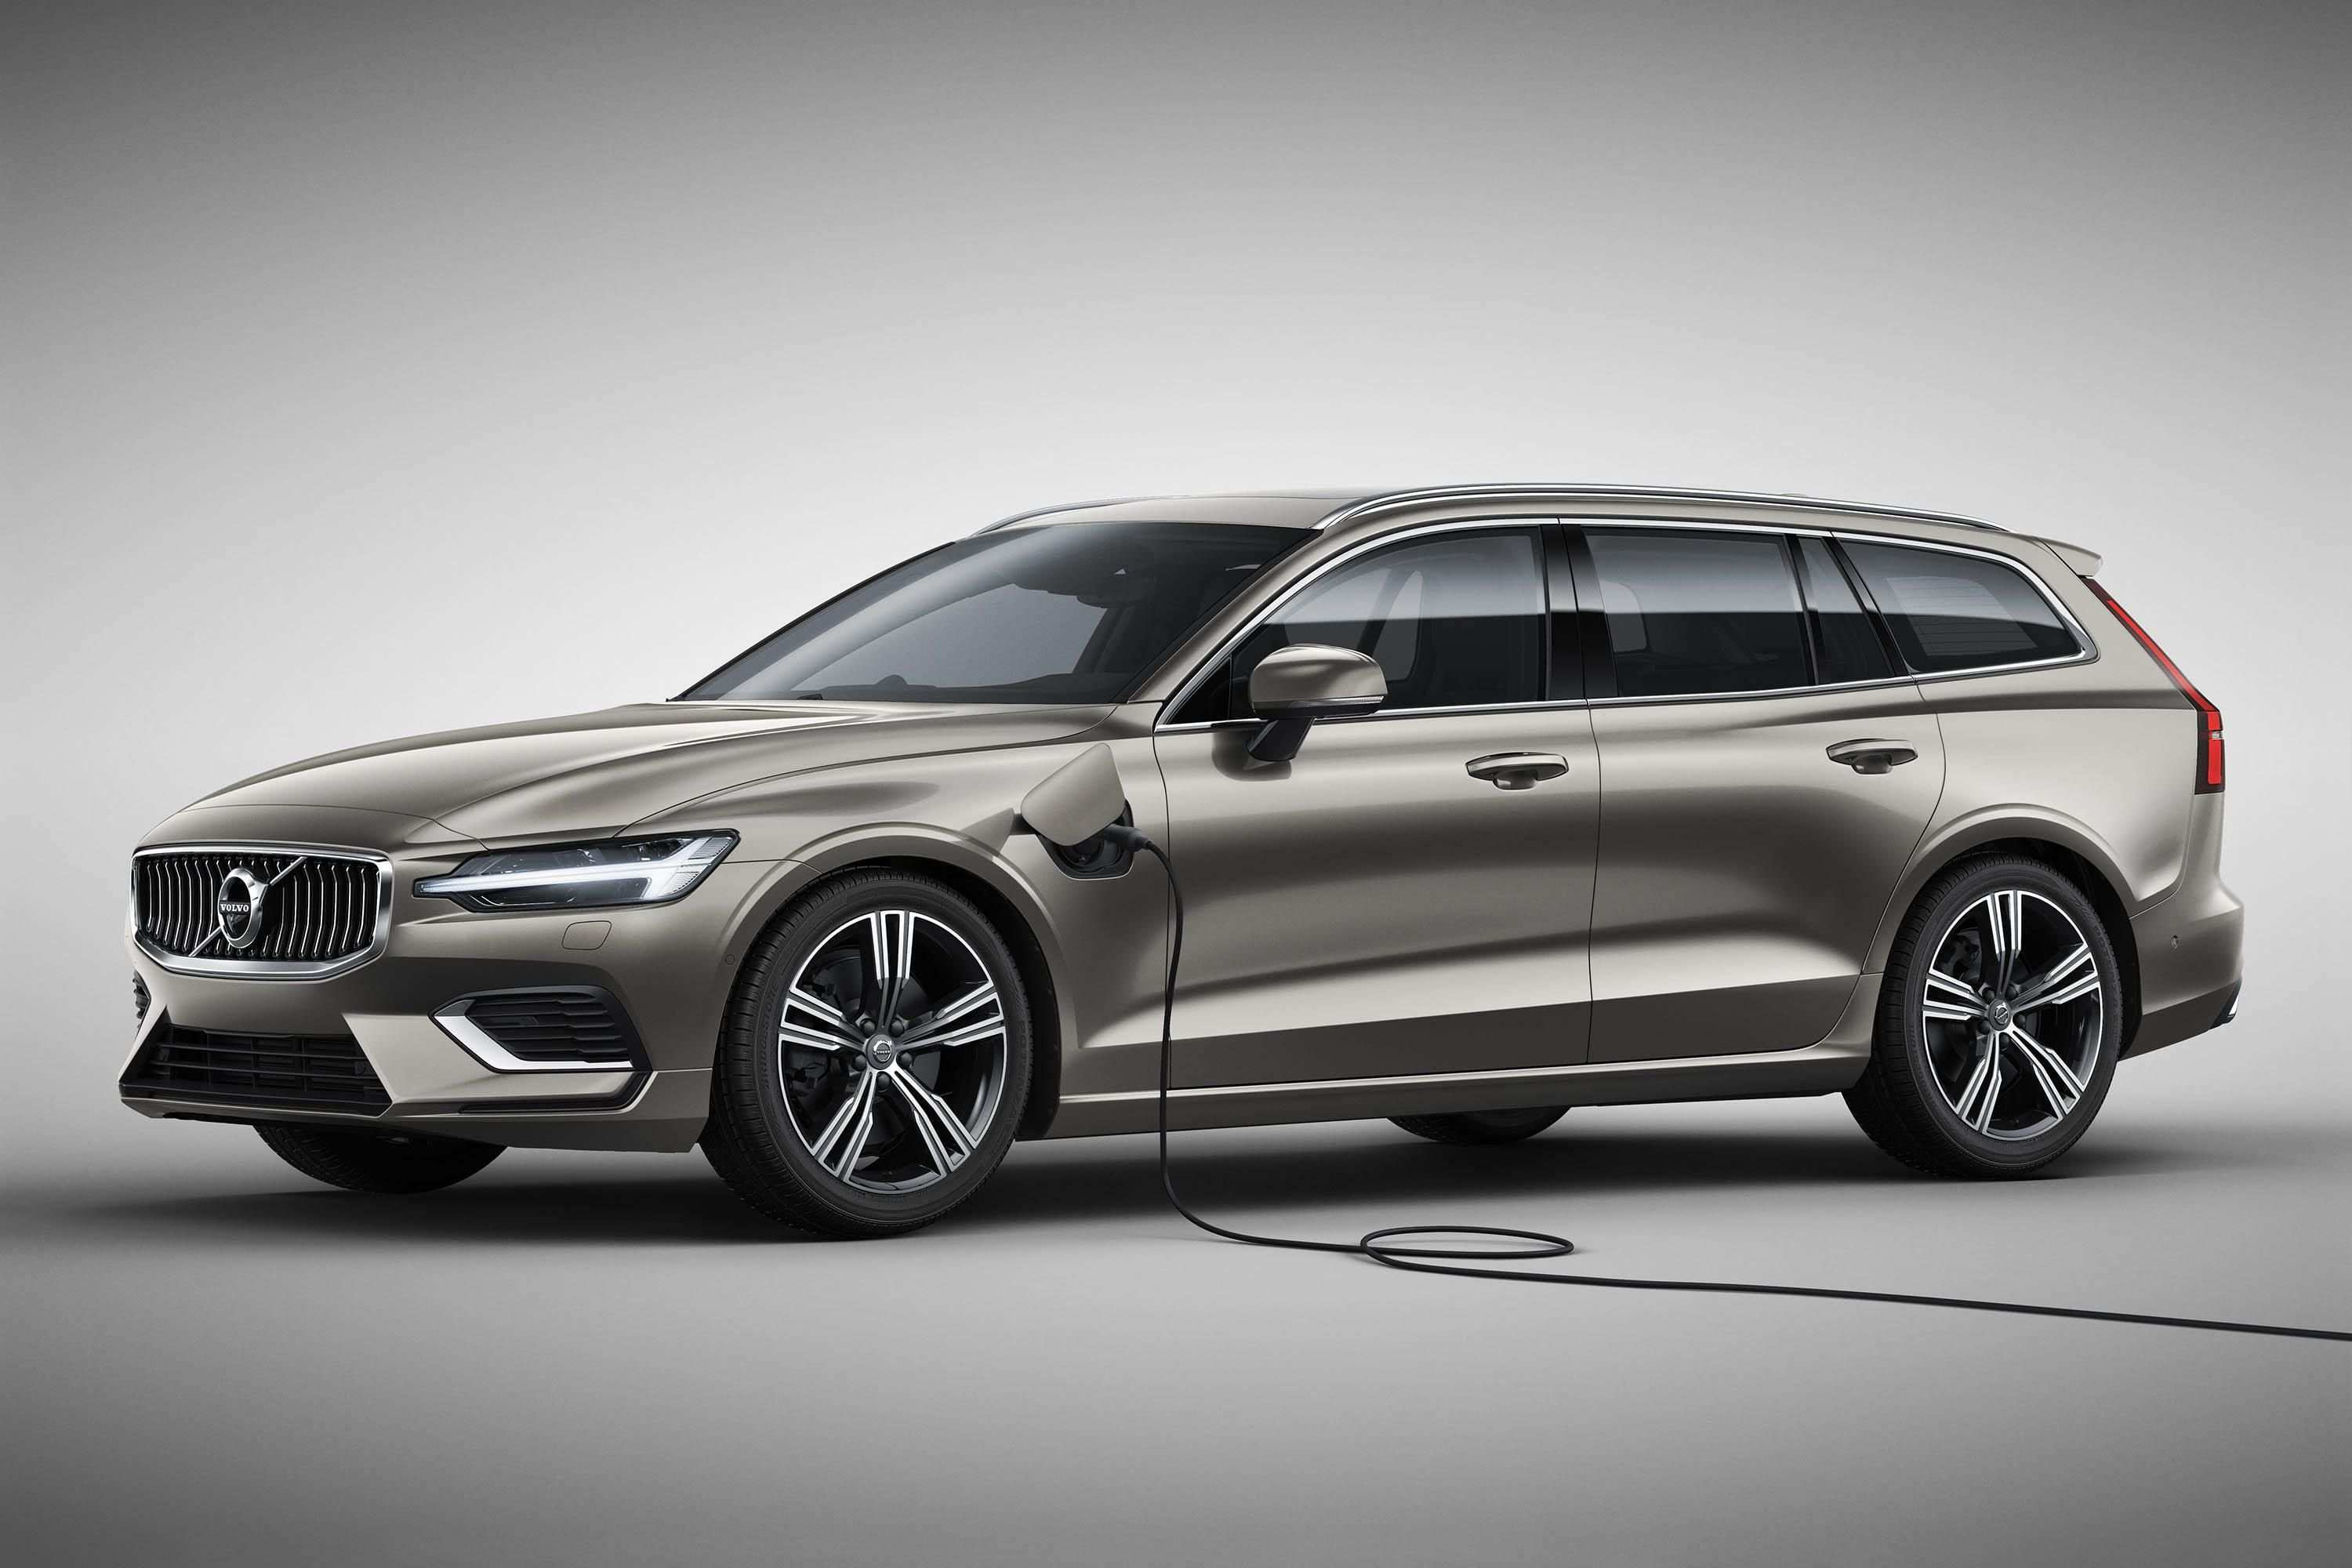 31 Concept of Best Volvo Electric Suv 2019 First Drive Price Performance And Review Spy Shoot by Best Volvo Electric Suv 2019 First Drive Price Performance And Review